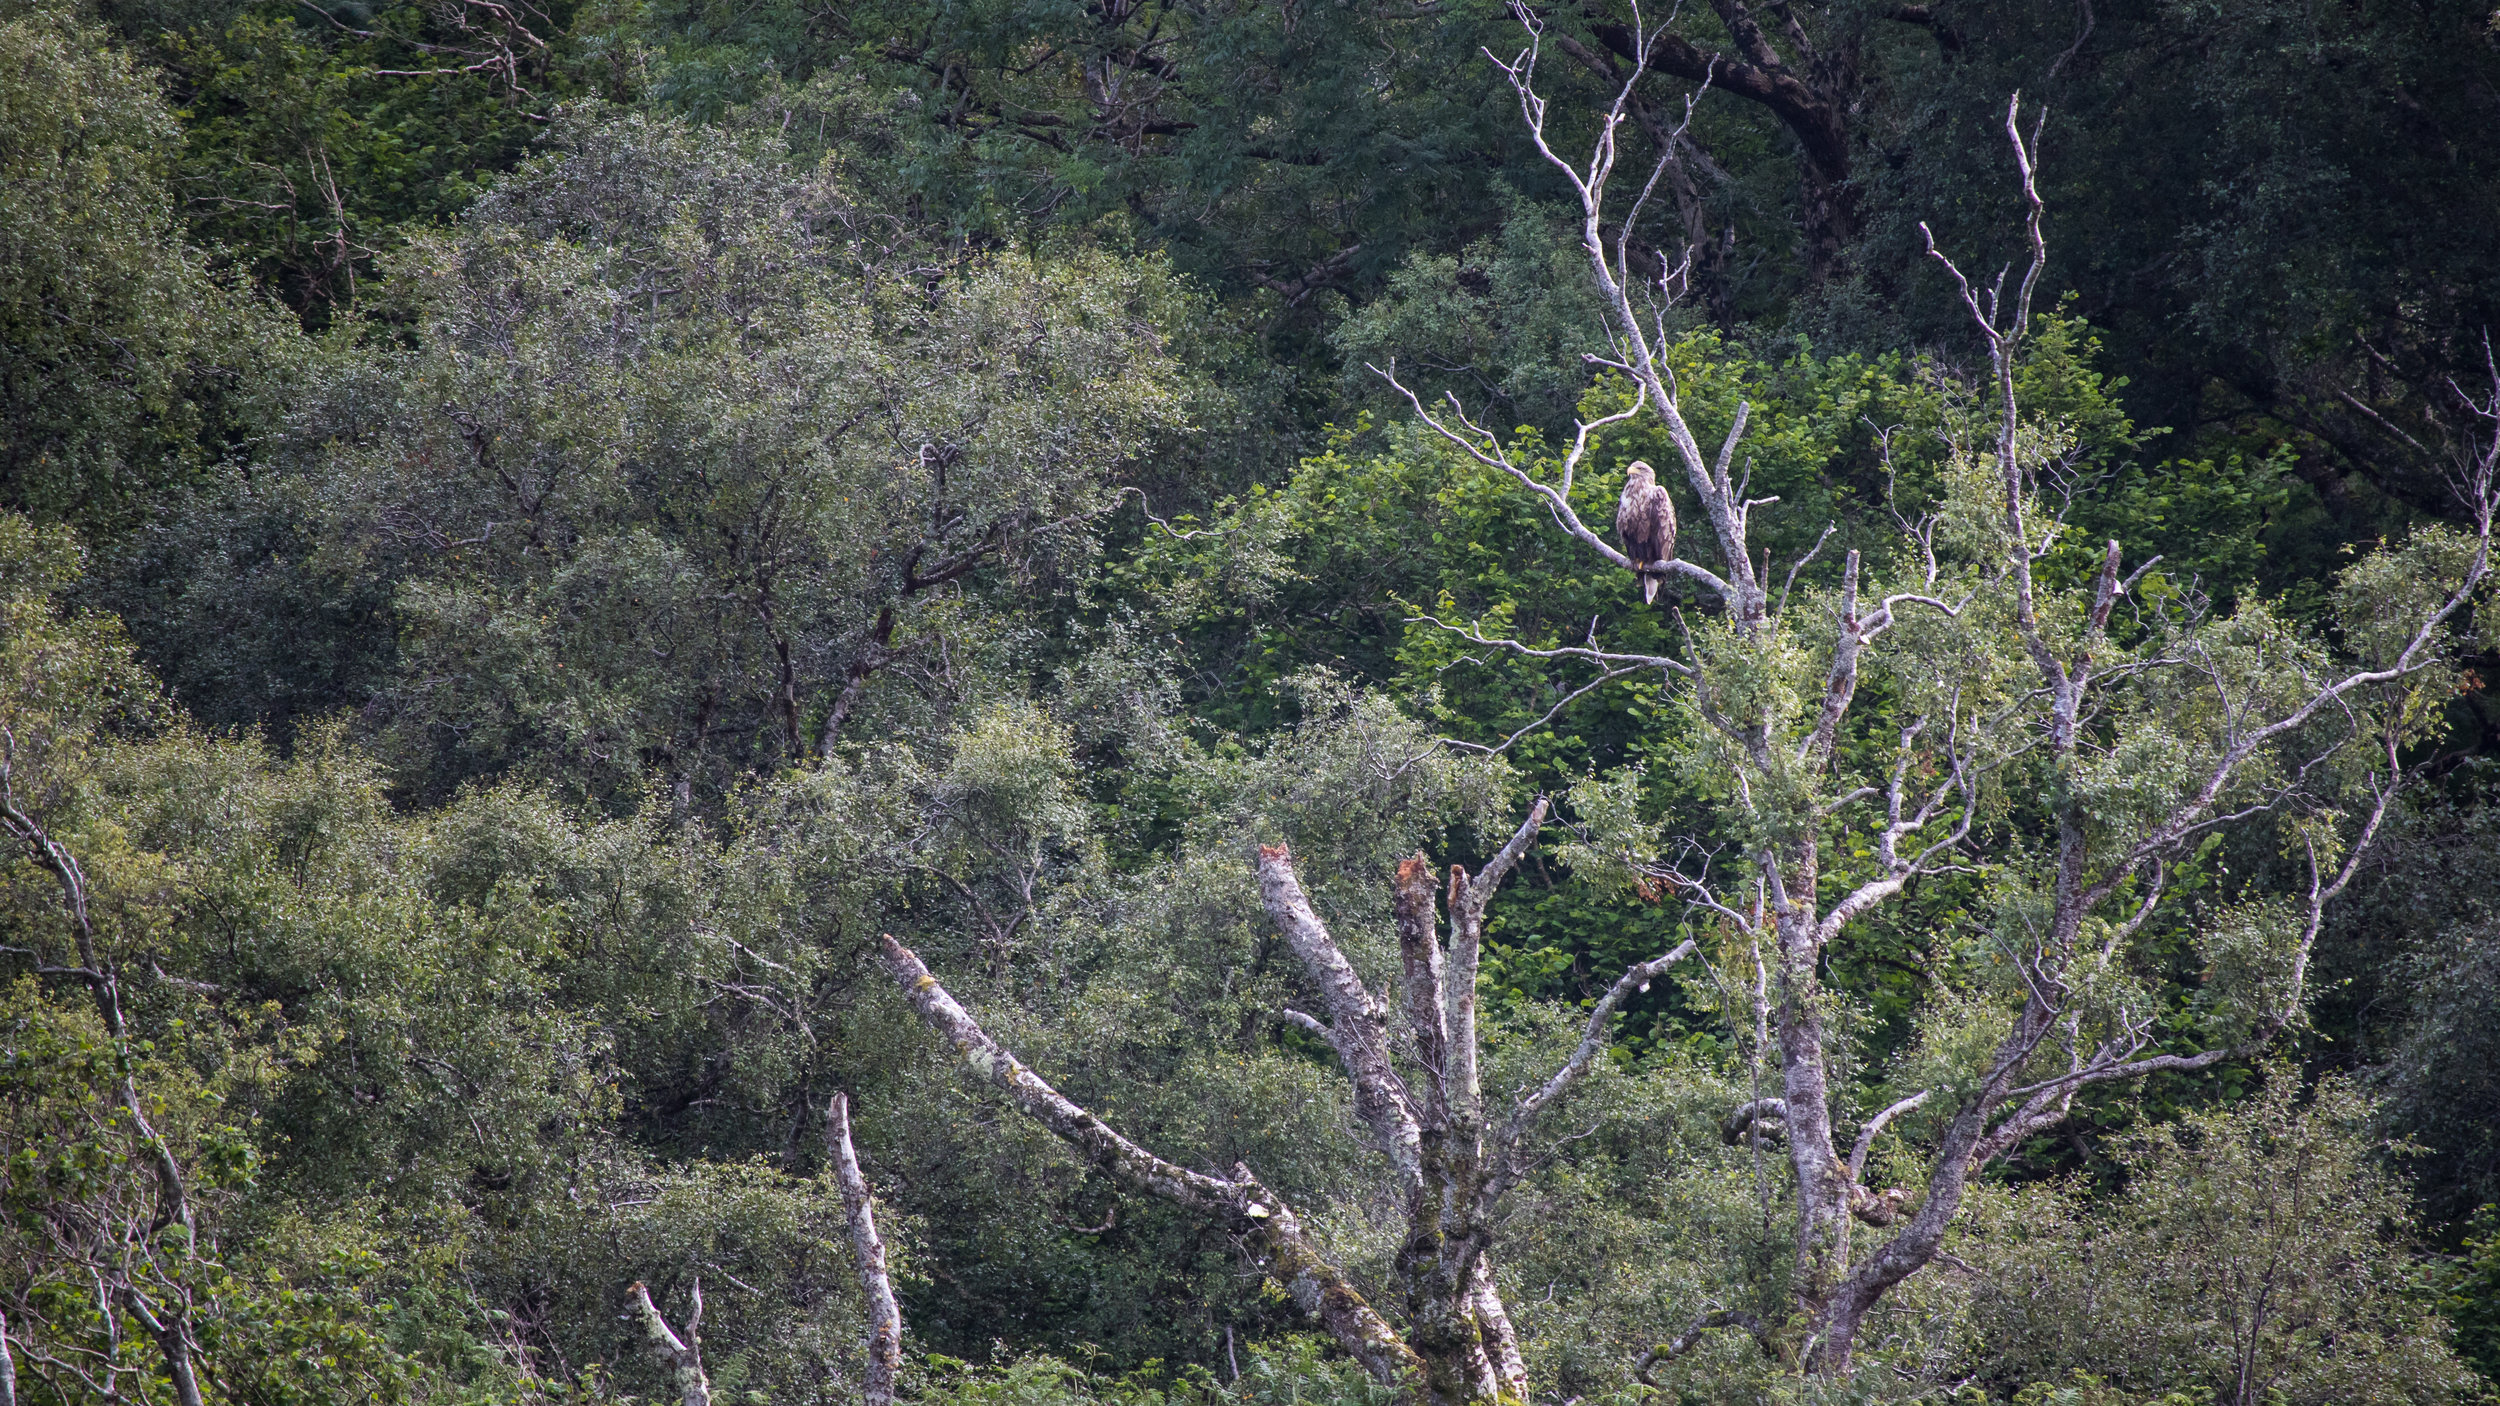 White-tailed Sea-eagle (Haliaeetus albicilla) on Isle of Mull, Scotland. August 2015. Not baited. Not called in.